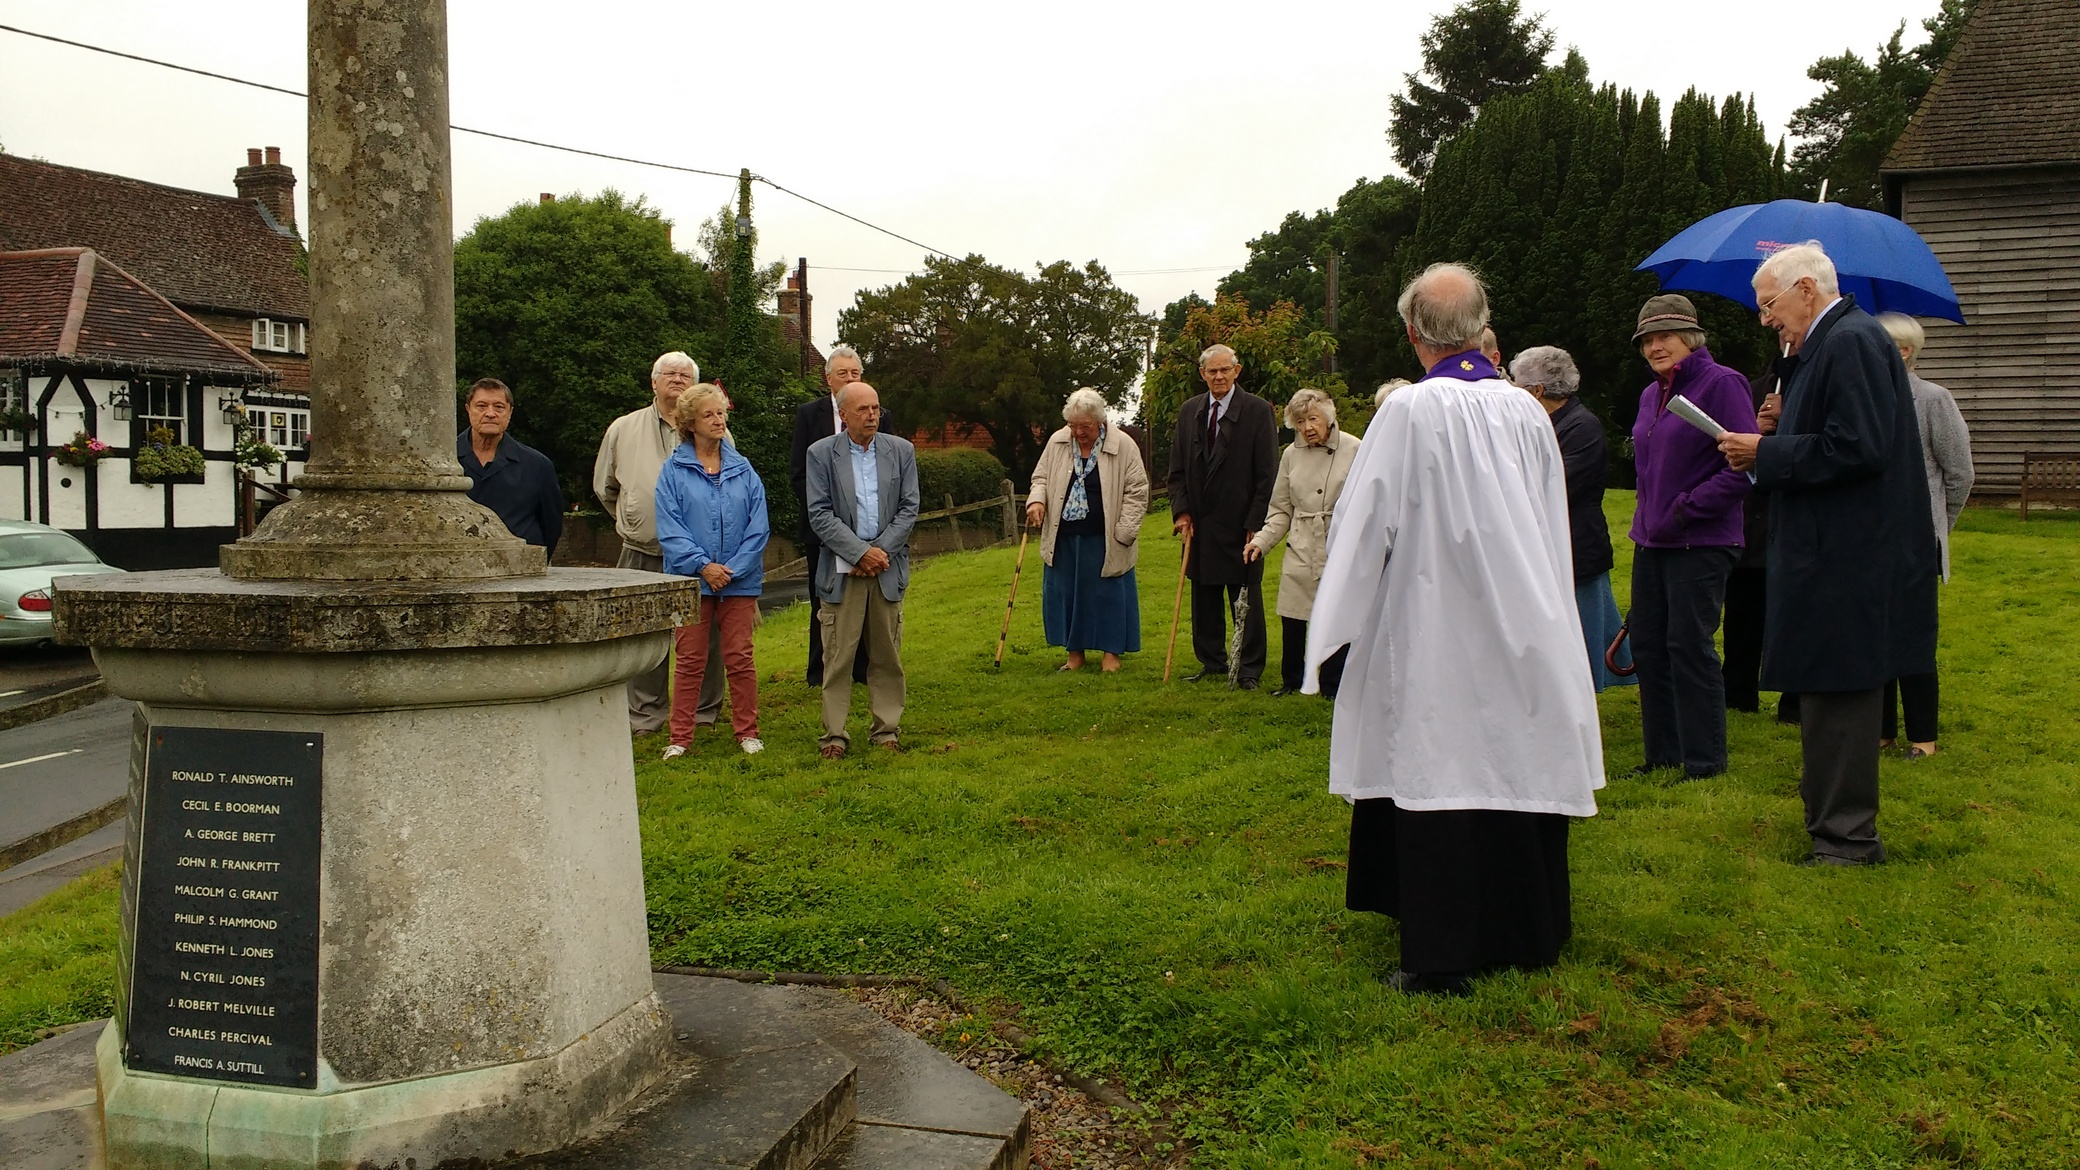 Commemorating the battle of the Somme at Newdigate